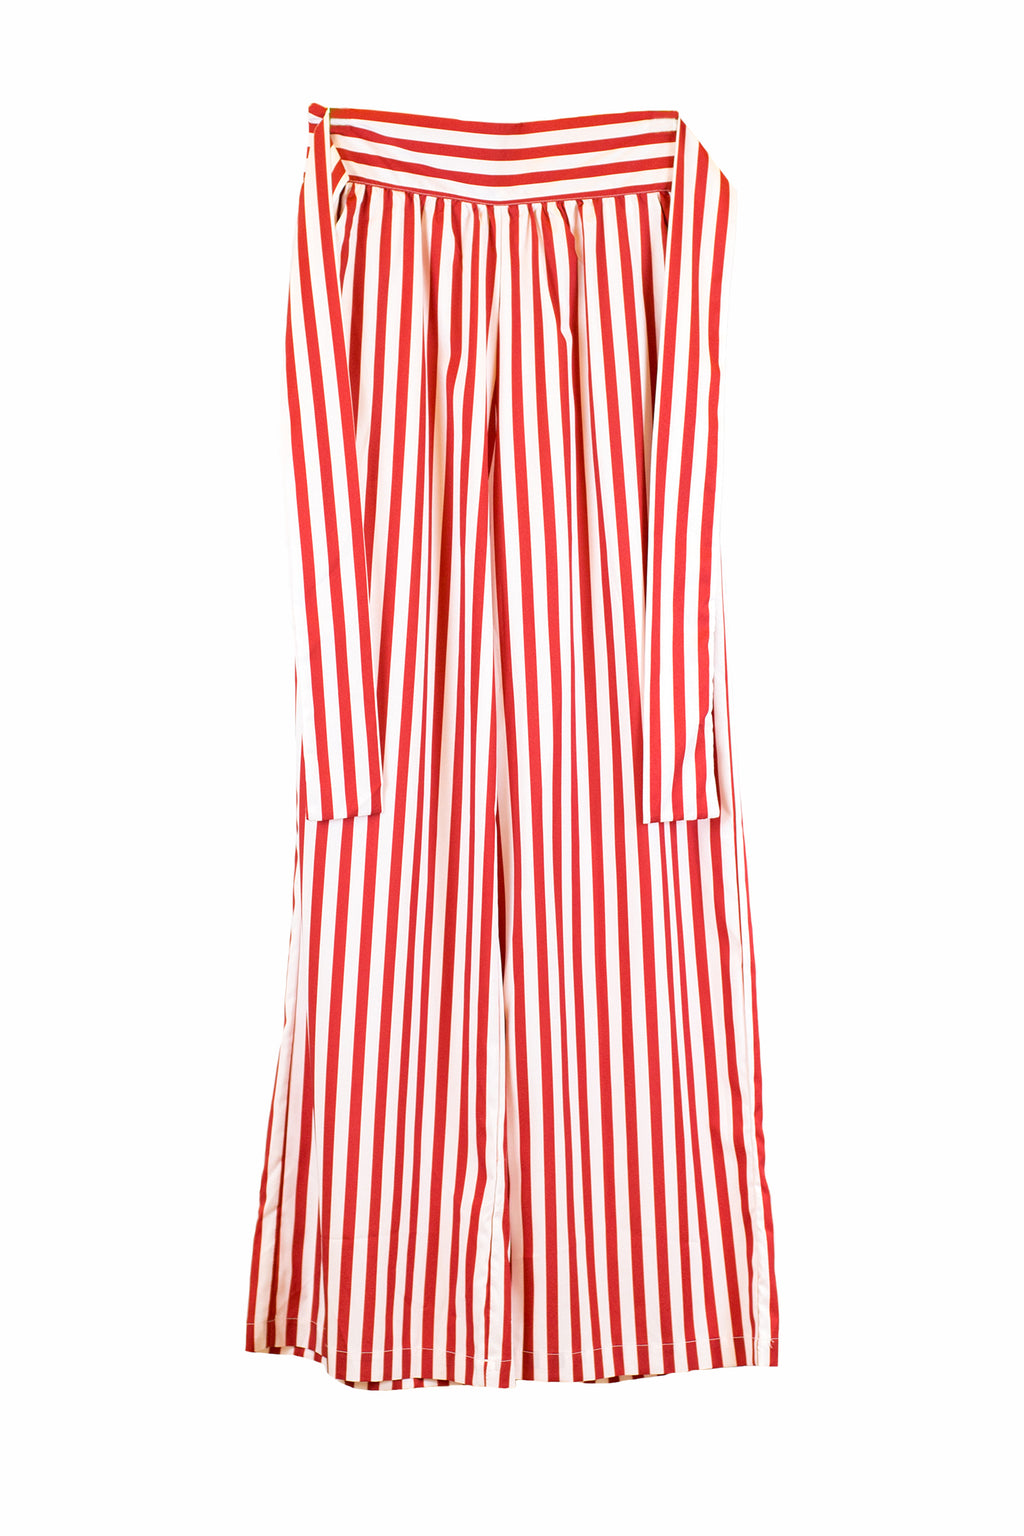 Kiswah - Red stripe trouser